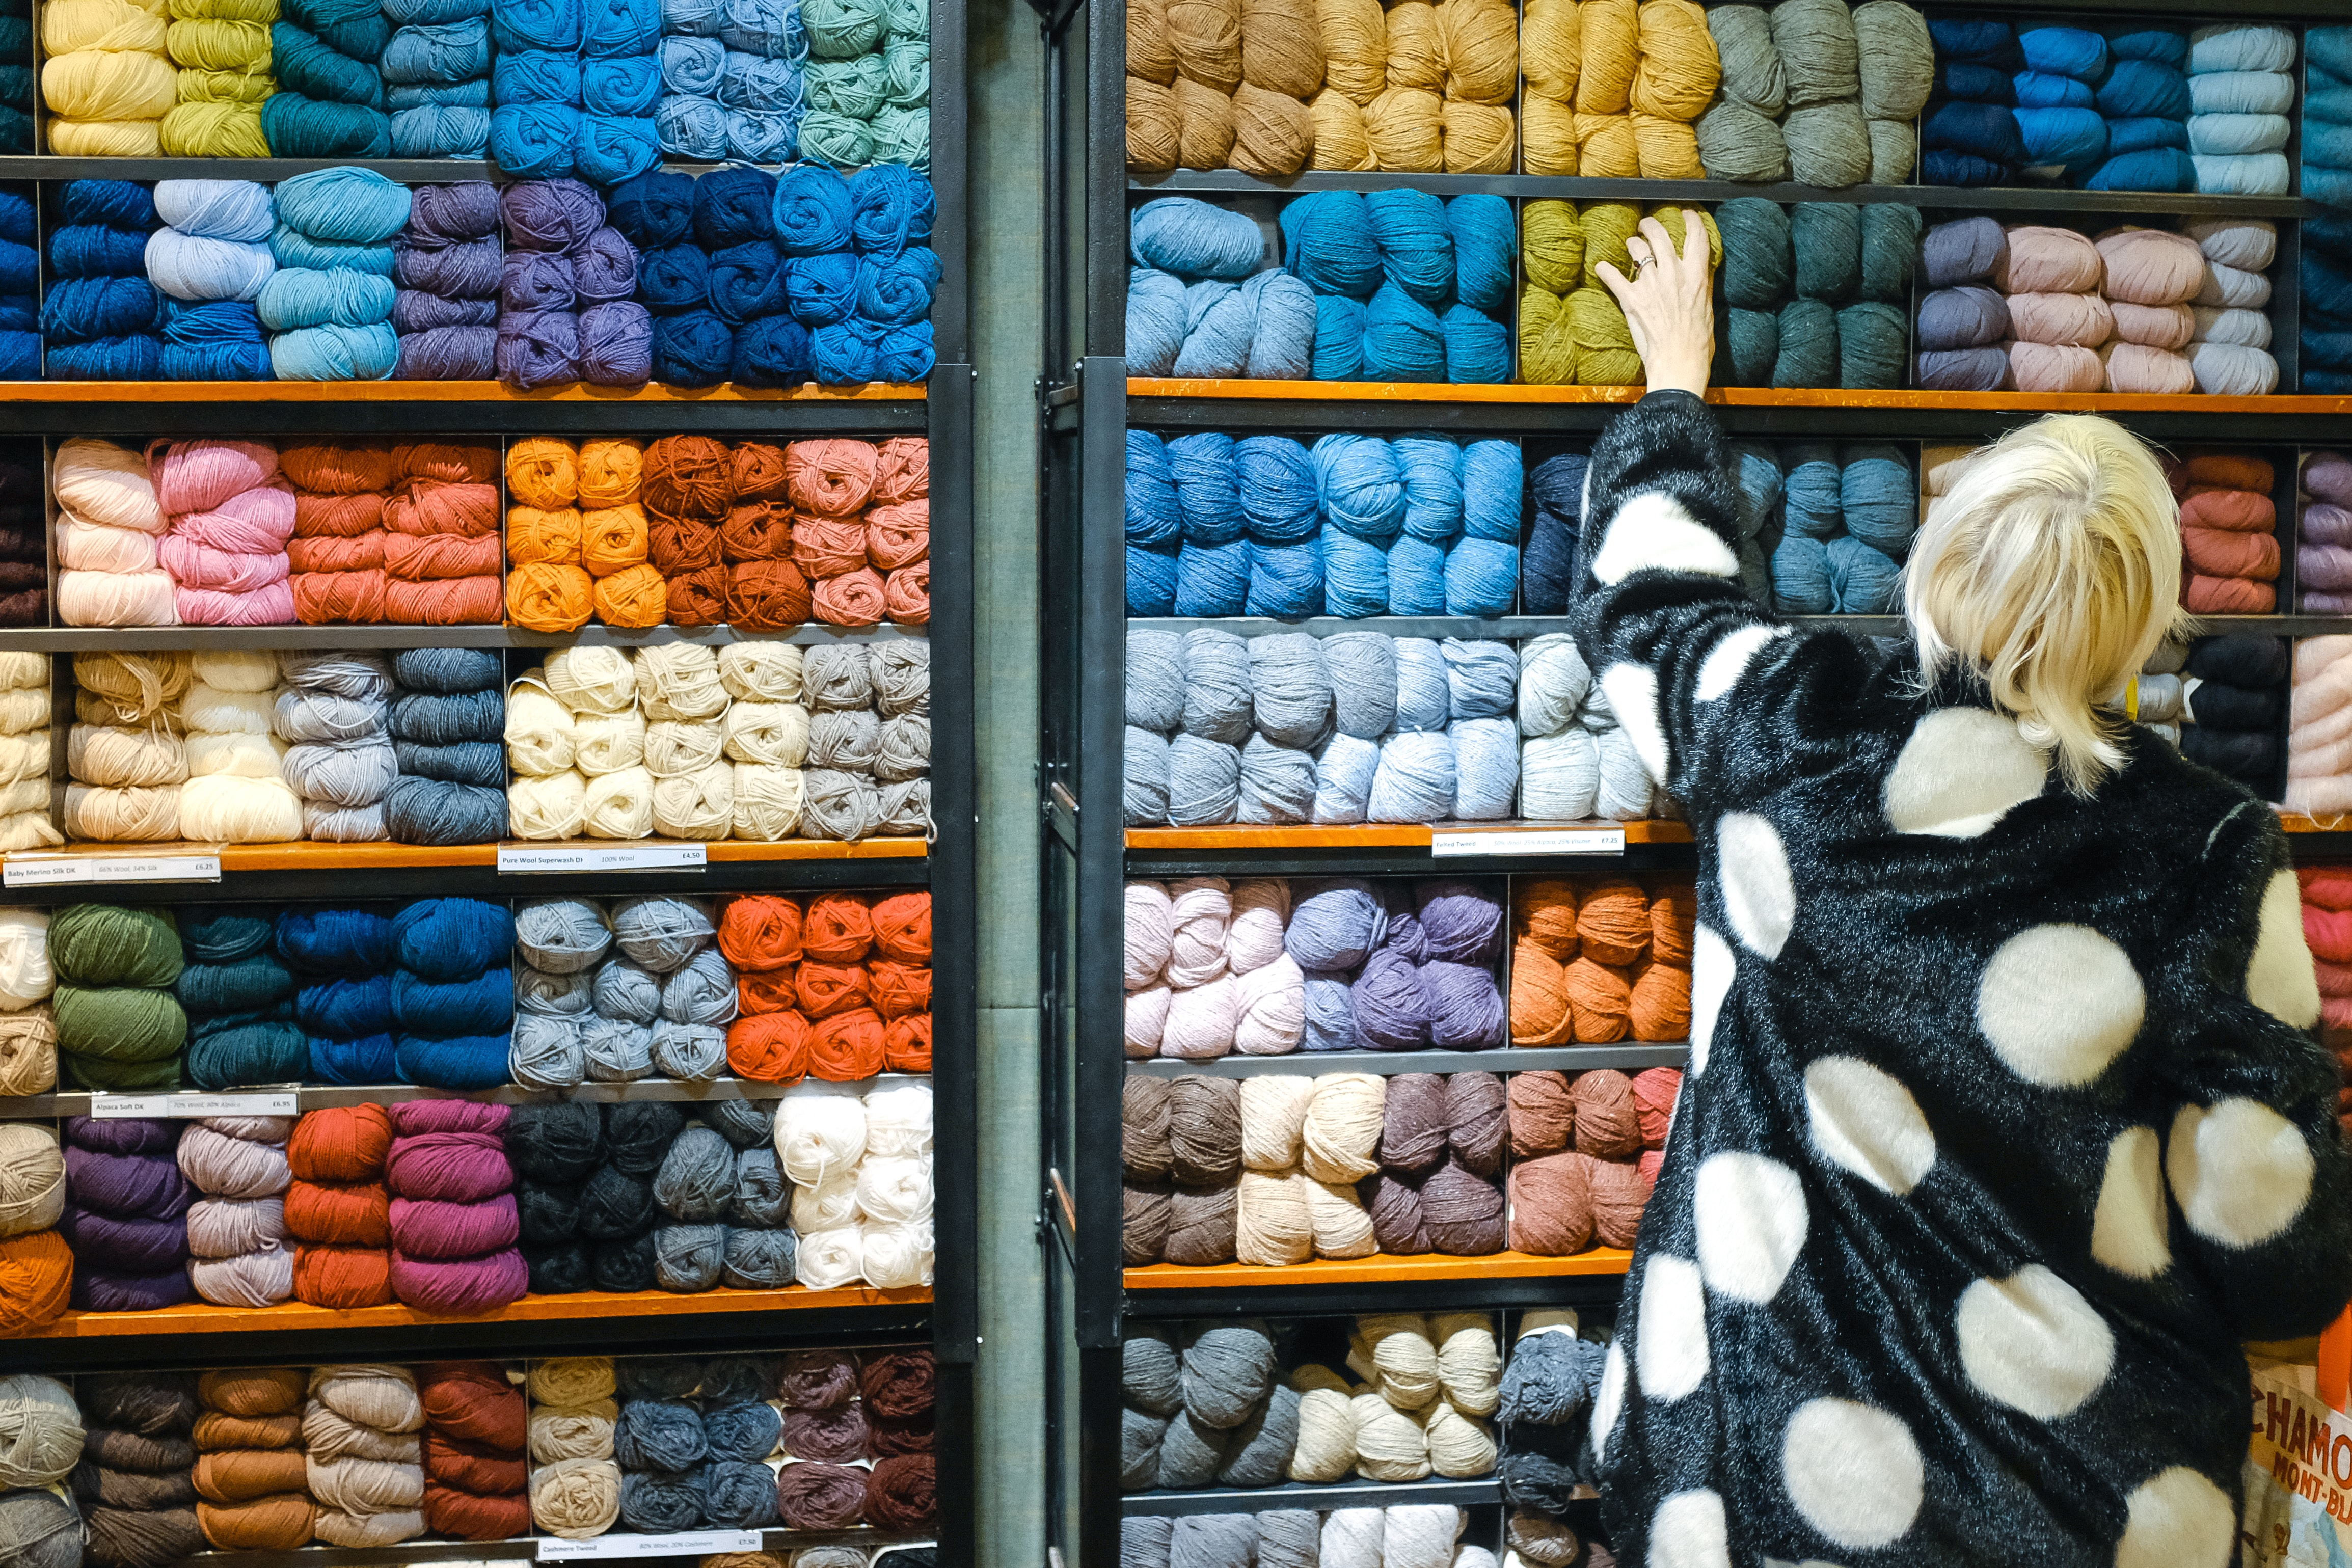 woman standing in front of displayed yarn rolls